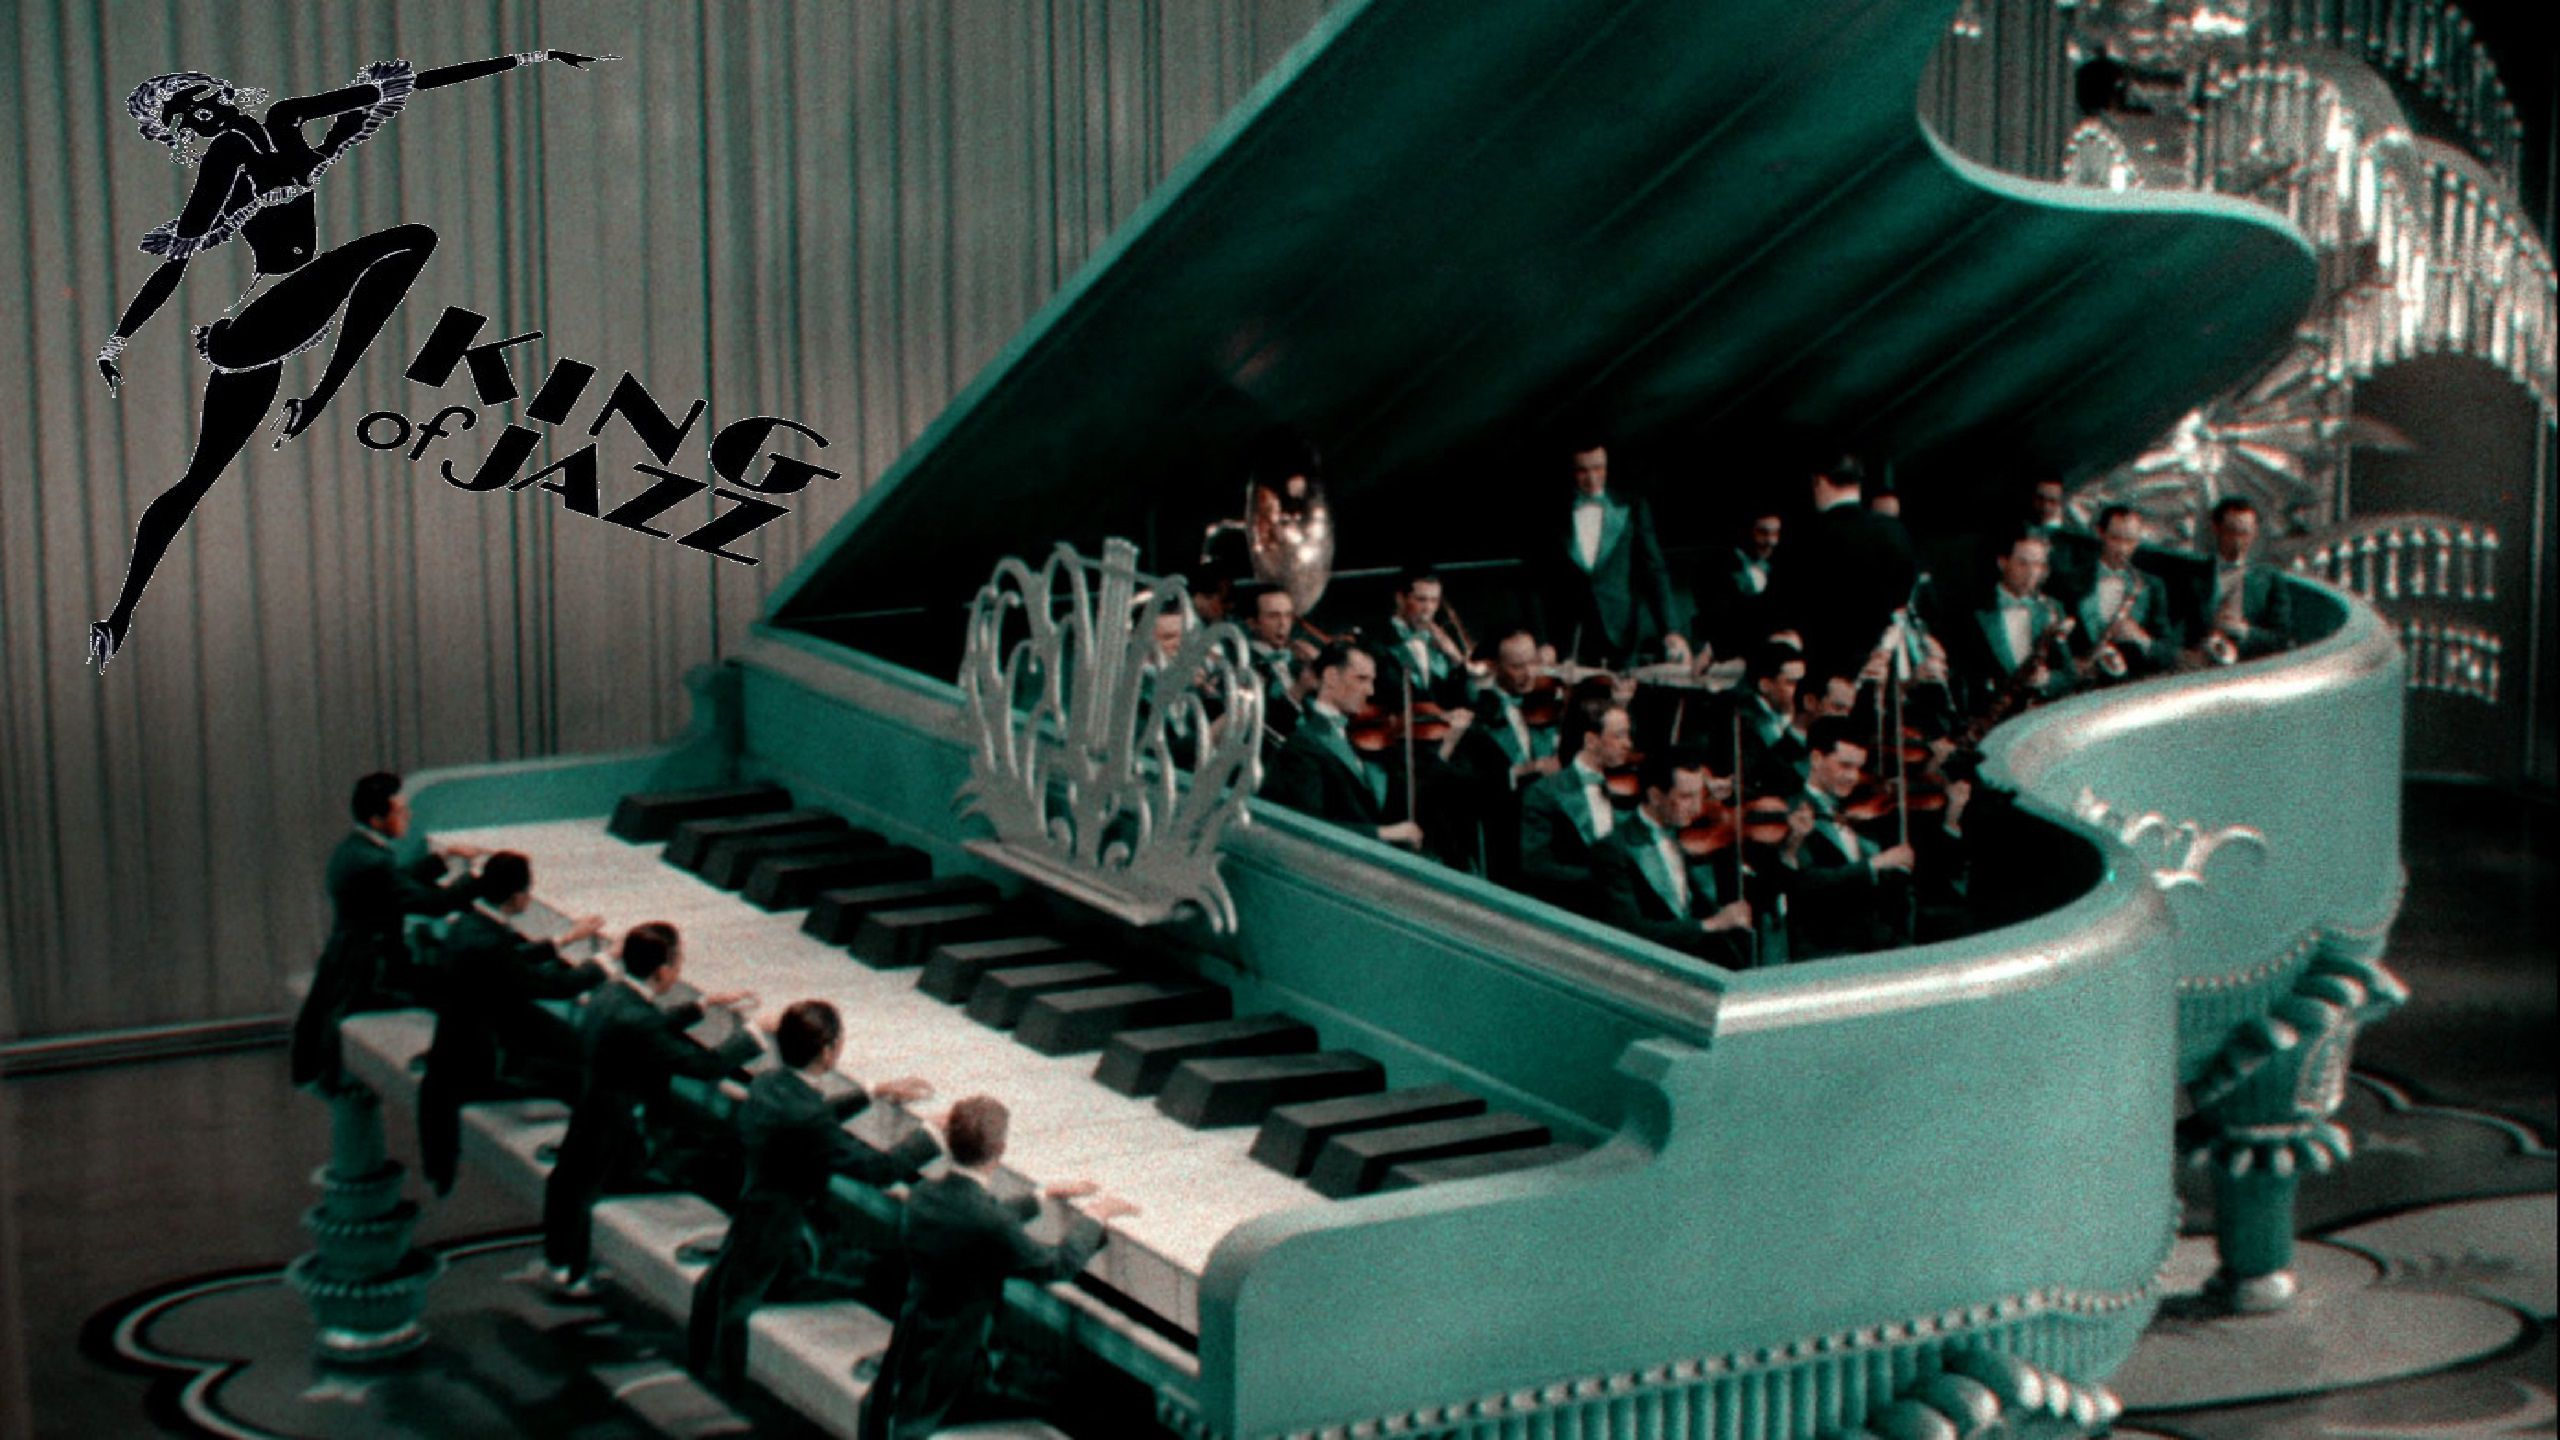 King of Jazz - Il Re del Jazz (1930) Great piano scene set with orchestra